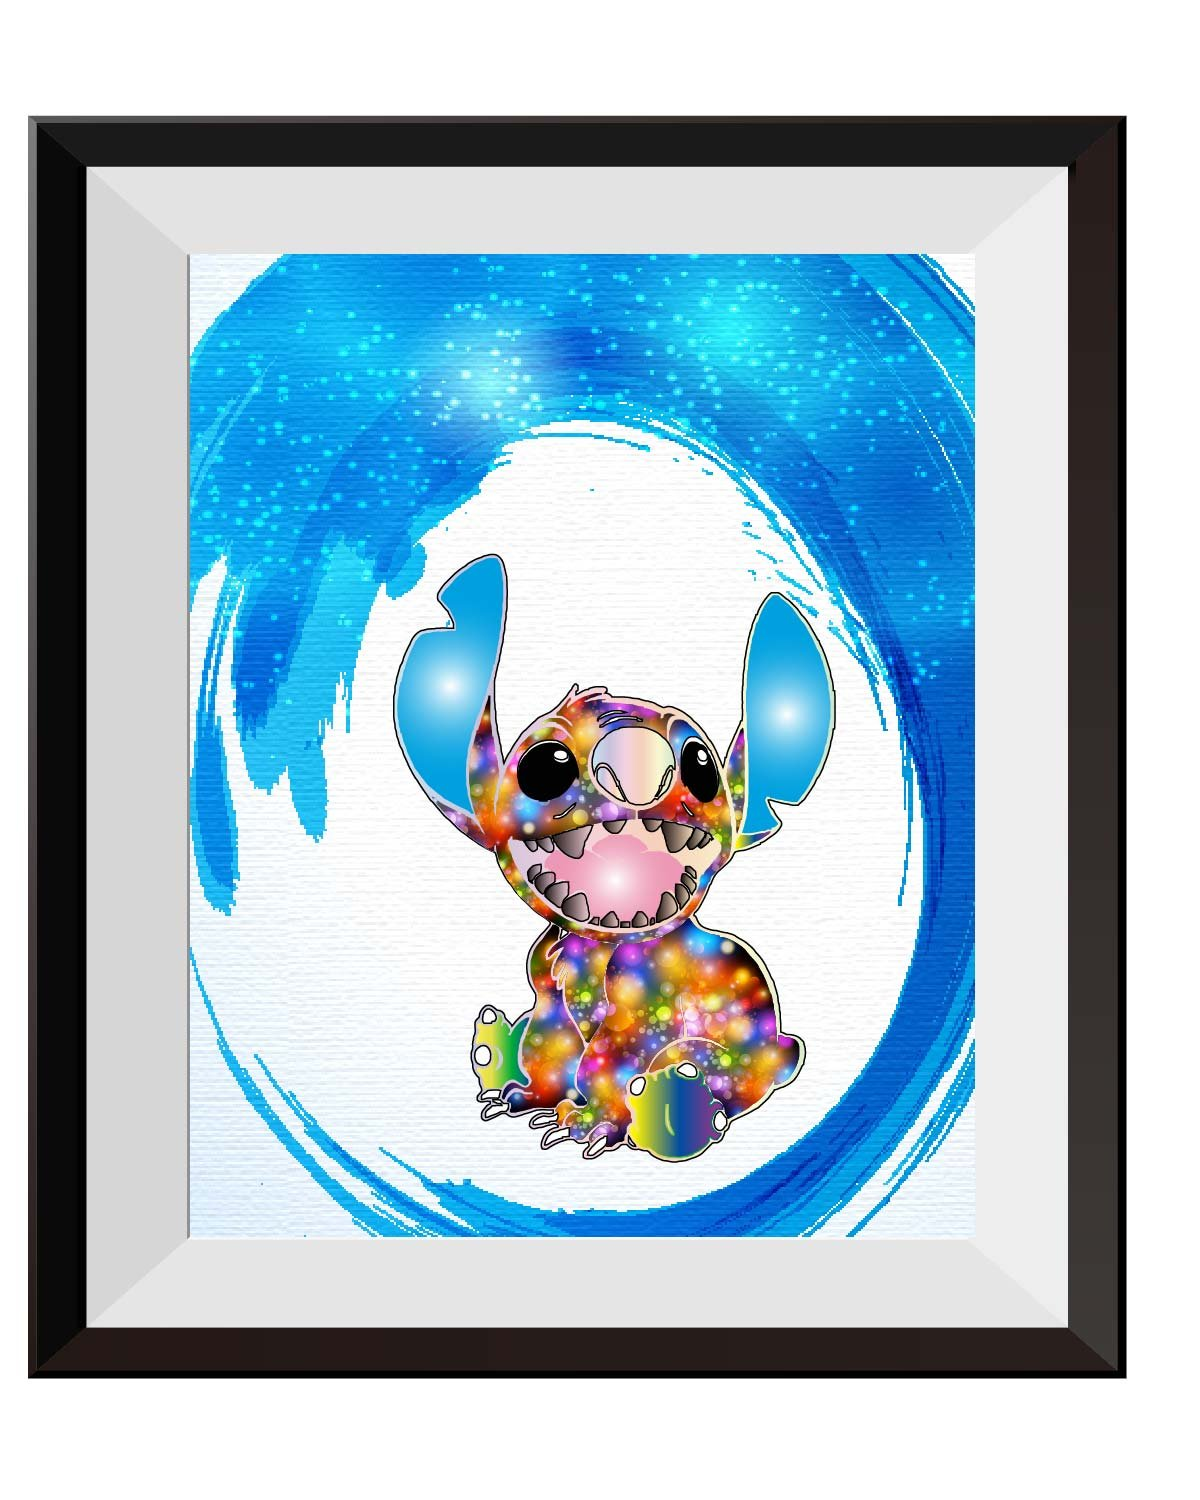 Uhomate Lilo and Stitch Ohana Stitch Tattoo Home Canvas Prints Wall Art Anniversary Gifts Baby Gift Inspirational Quotes Wall Decor Living Room Bedroom Bathroom Artwork C038 (8X10)